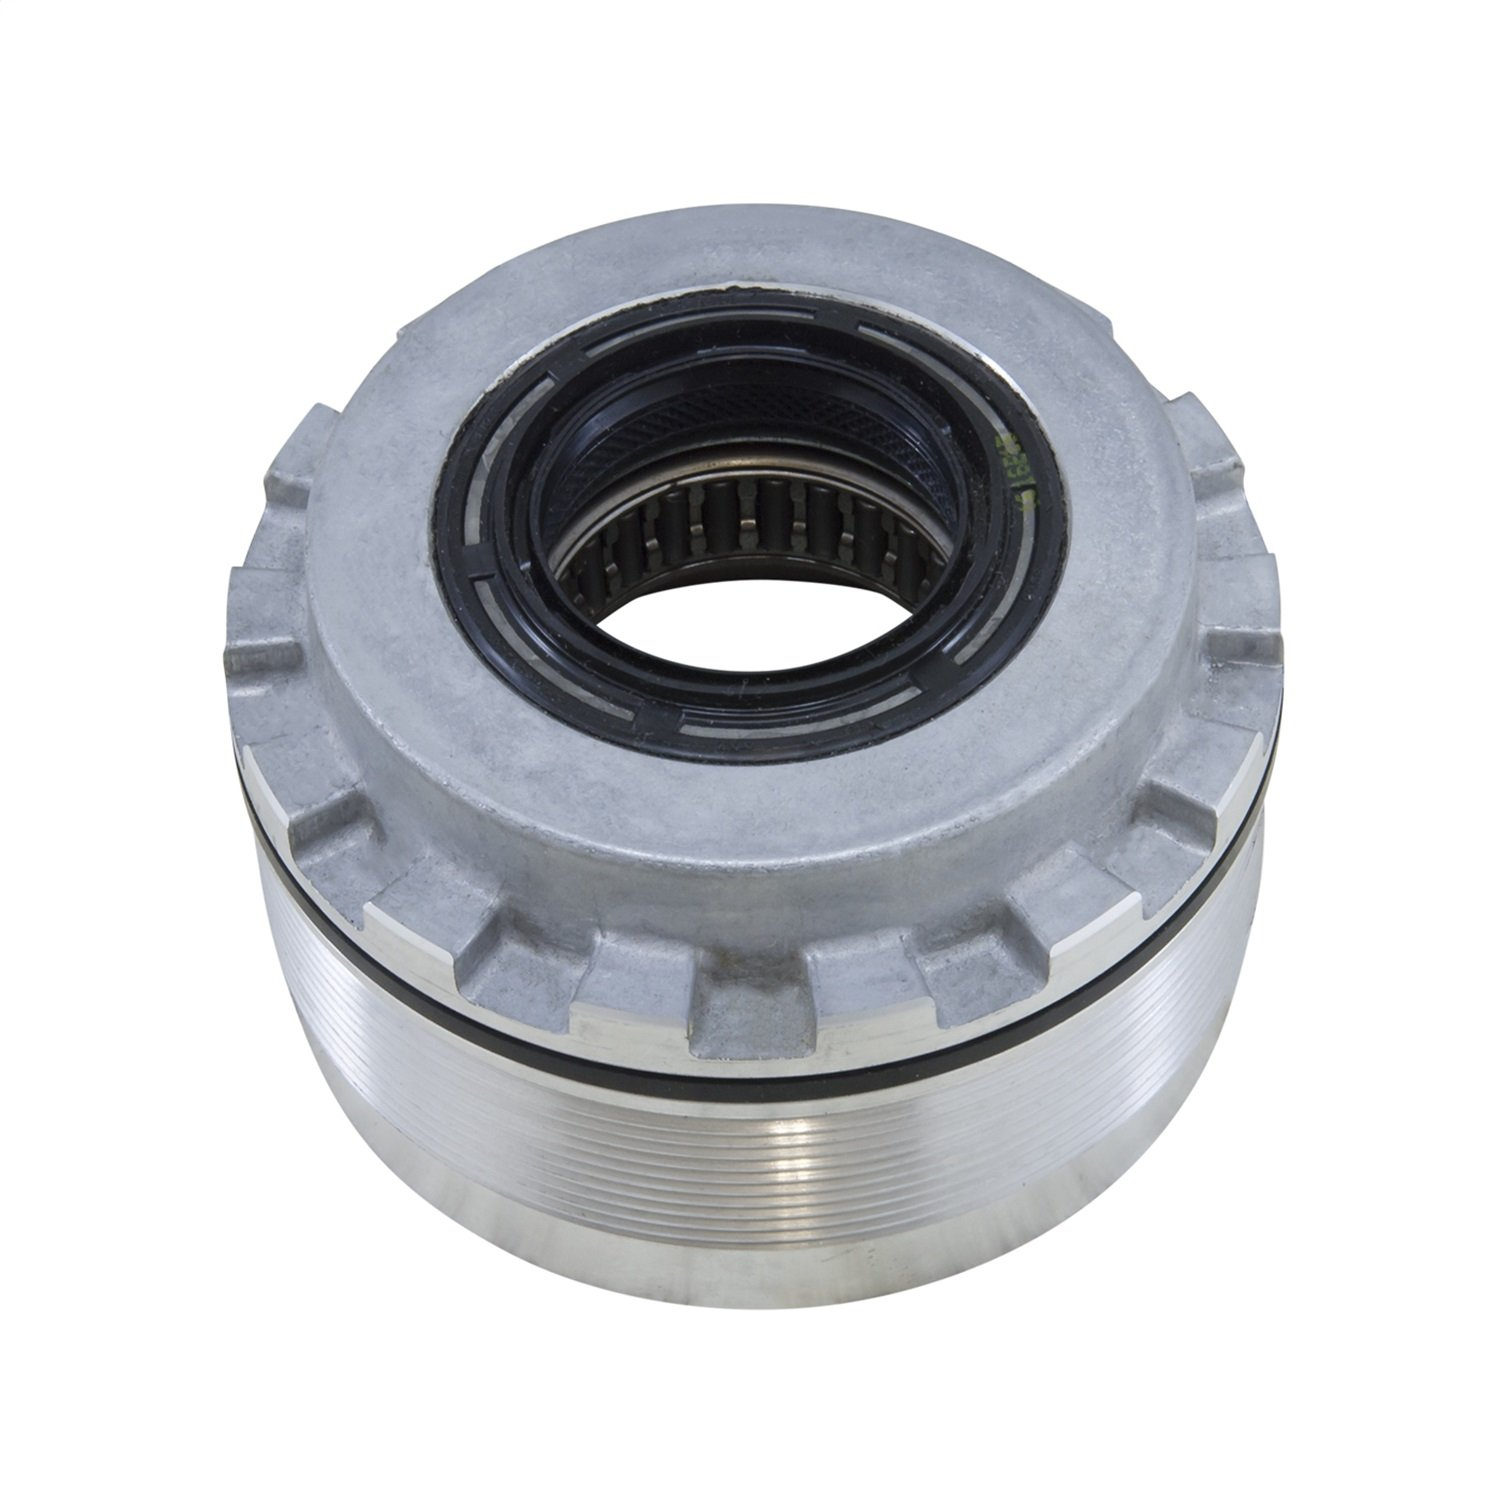 Yukon Gear & Axle (YSPSA-016) Left Carrier Bearing Adjuster for GM 9.25 IFS Differential